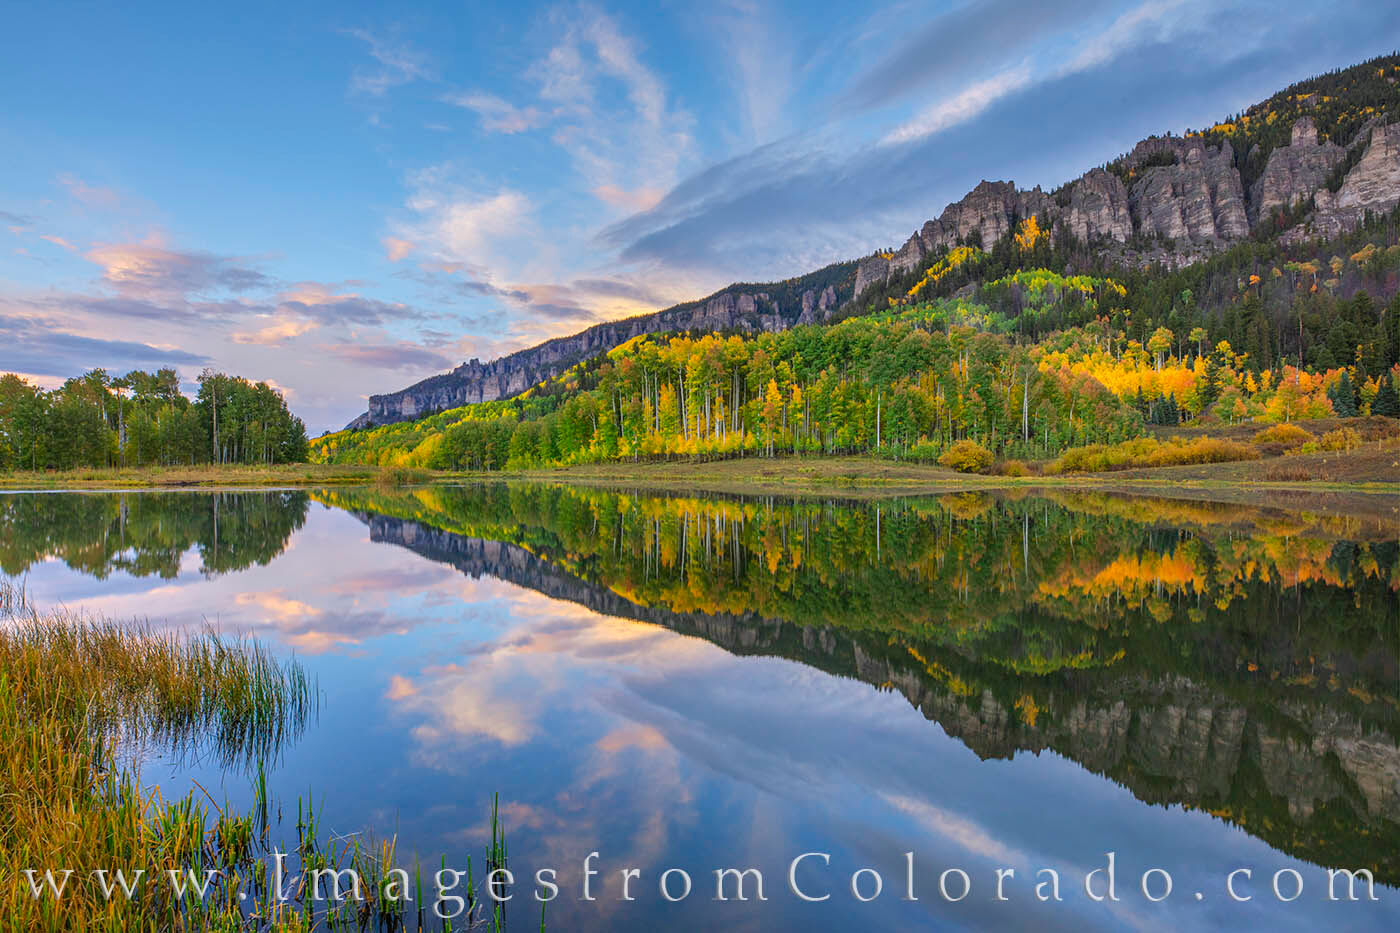 Early fall colors show up in the aspen along the edges of Clear Lake in the Cimarron Valley. A storm had just rolled through...